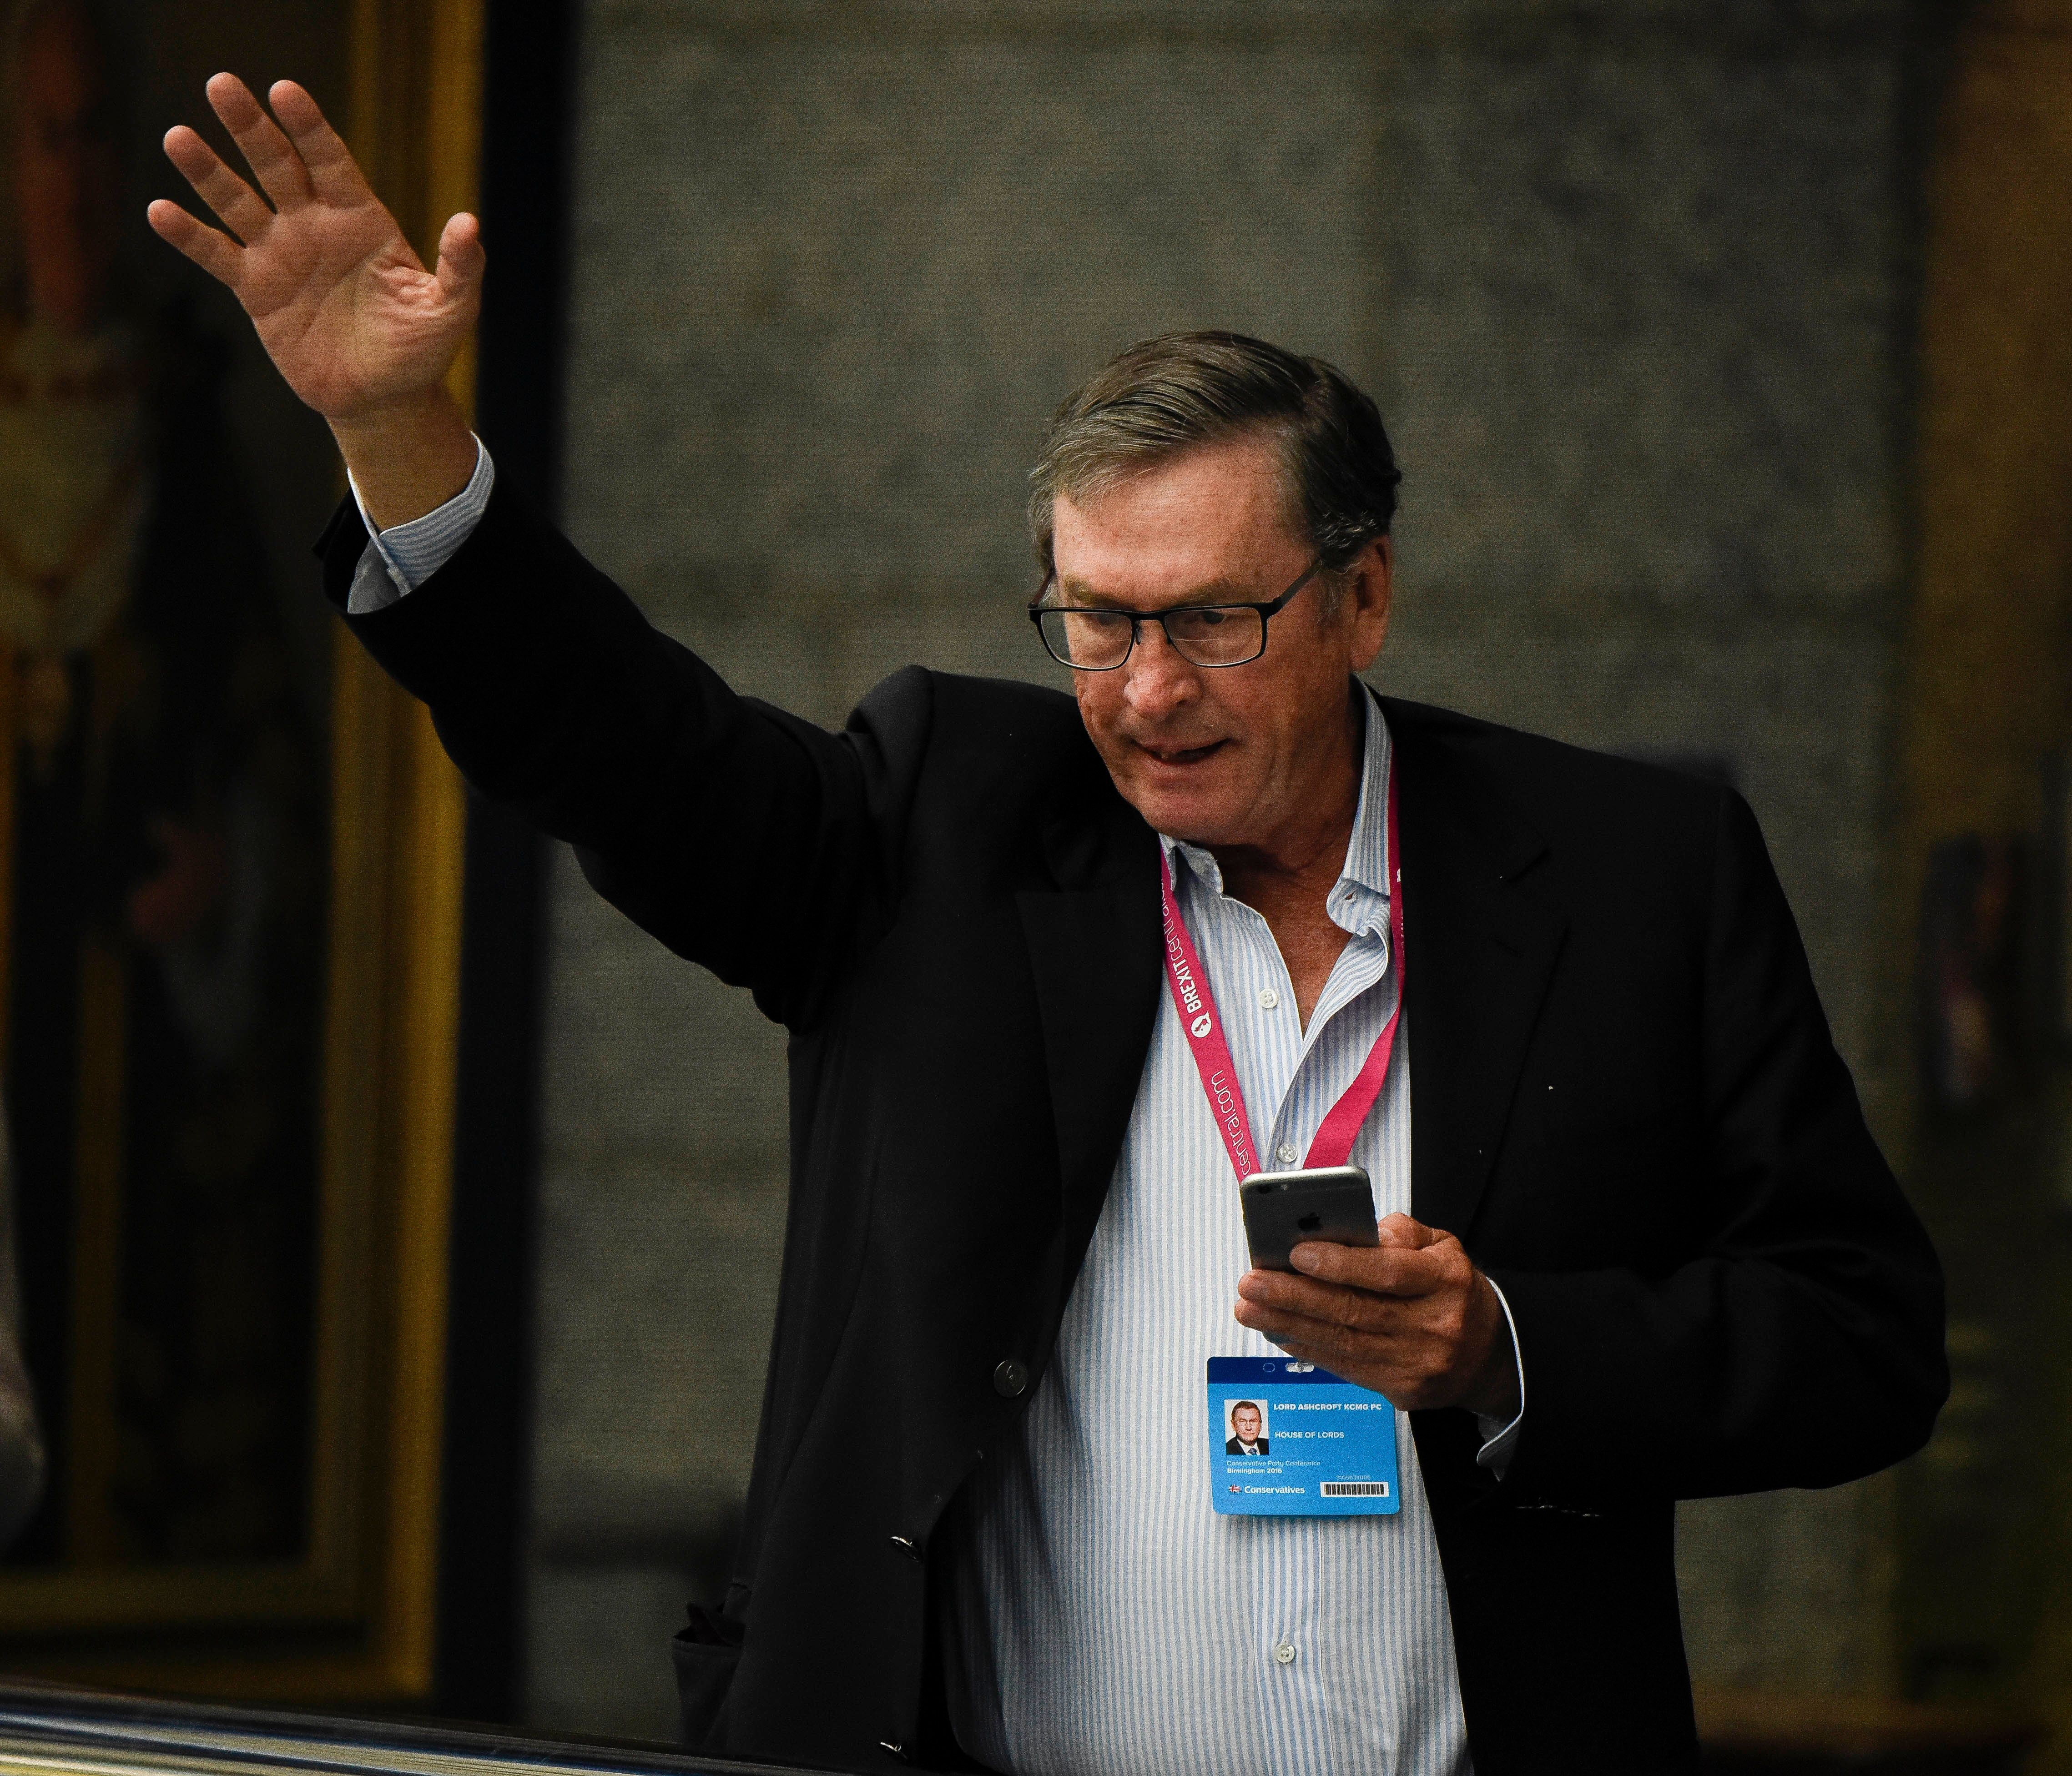 <strong>Lord Ashcroft has denied tax avoidance claims&nbsp;</strong>